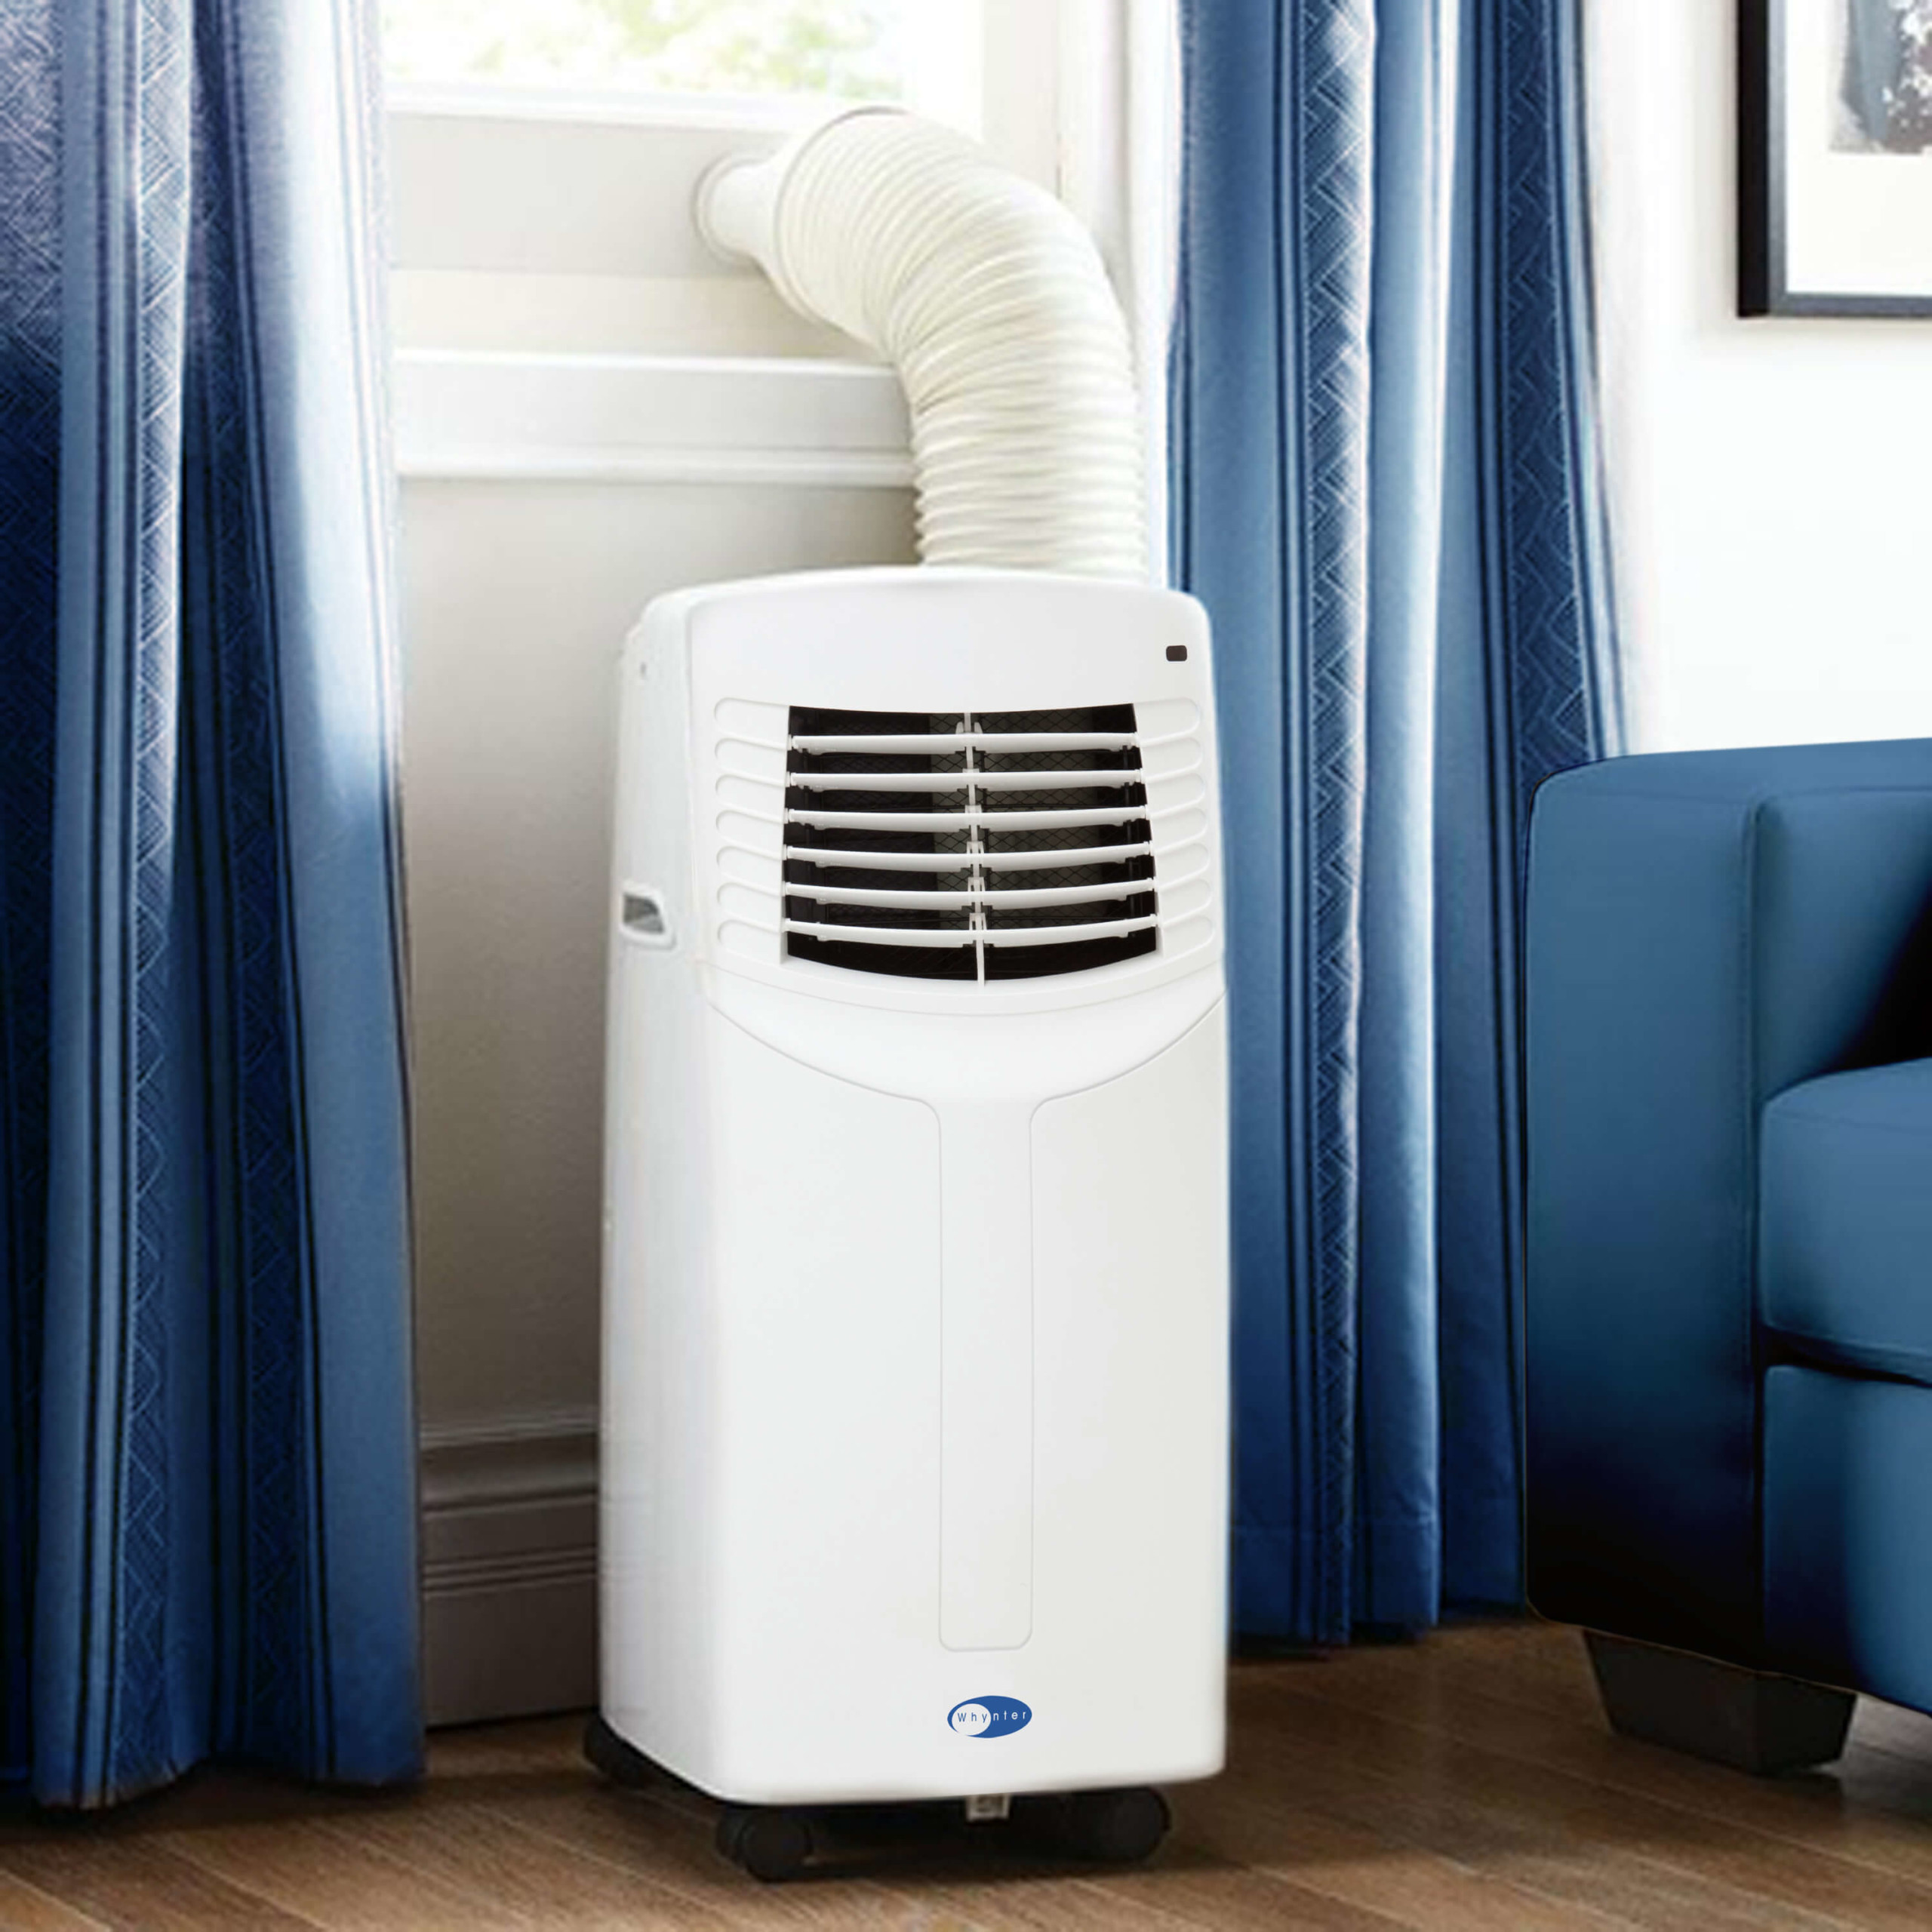 WHYNTER ARC-08WB ECO-FRIENDLY Portable Air Conditioner